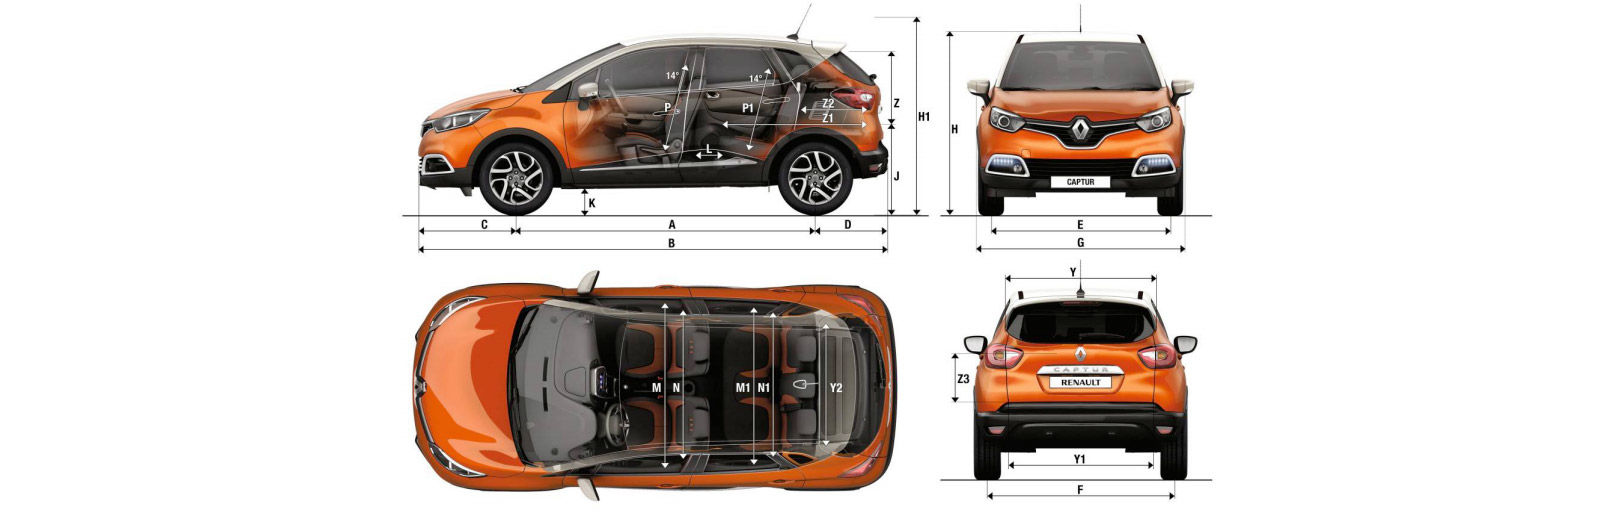 renault captur sizes and dimensions guide carwow. Black Bedroom Furniture Sets. Home Design Ideas